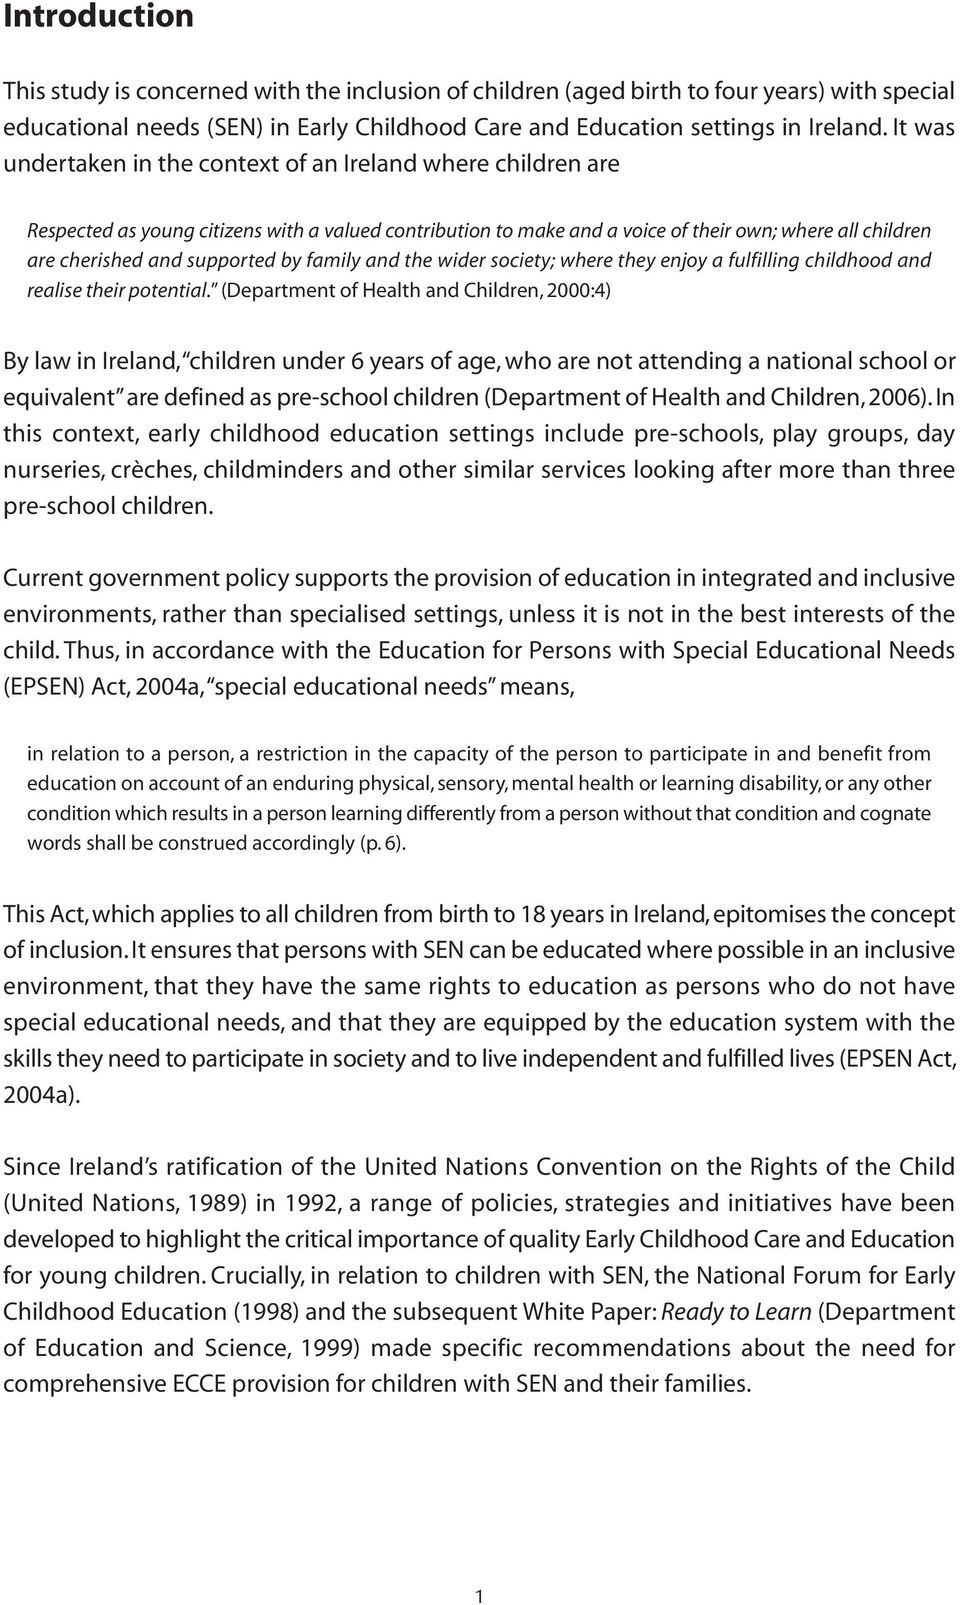 the context of special needs in ireland